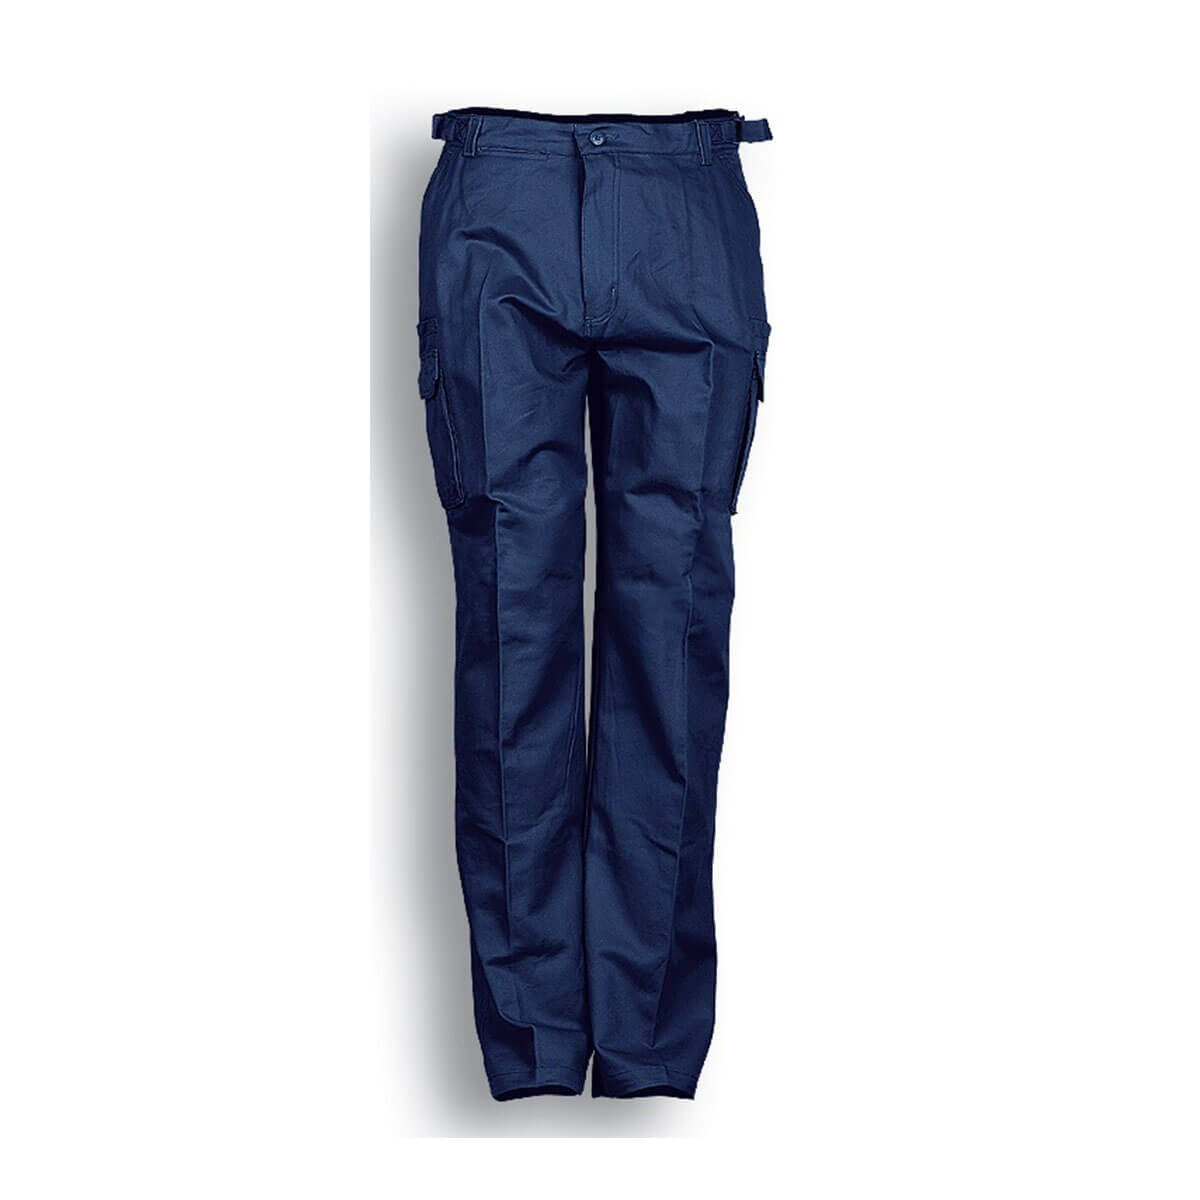 COTTON DRILL CAGO PANTS-Navy